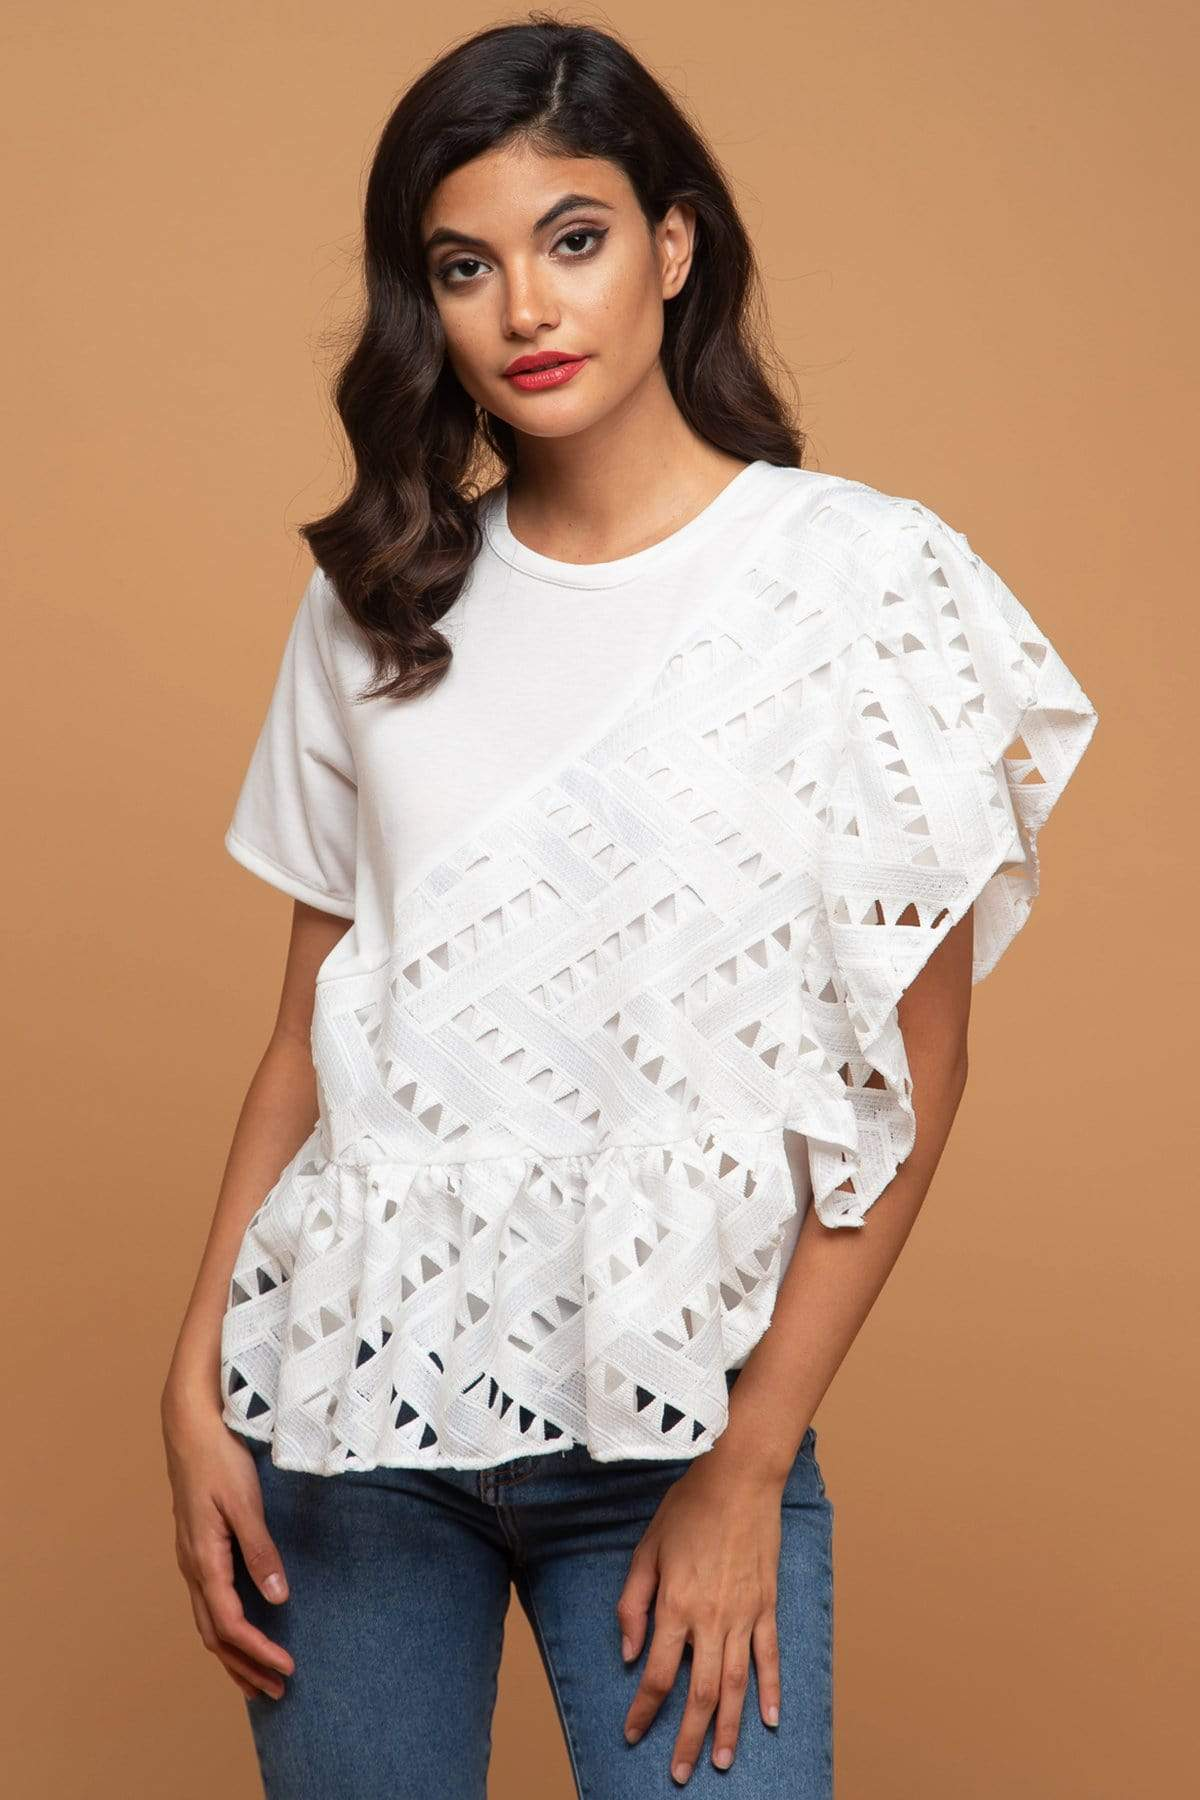 Eva Franco Top Cleo Asymmetrical Ruffled Overlay Top - White Nights Cutwork Lace